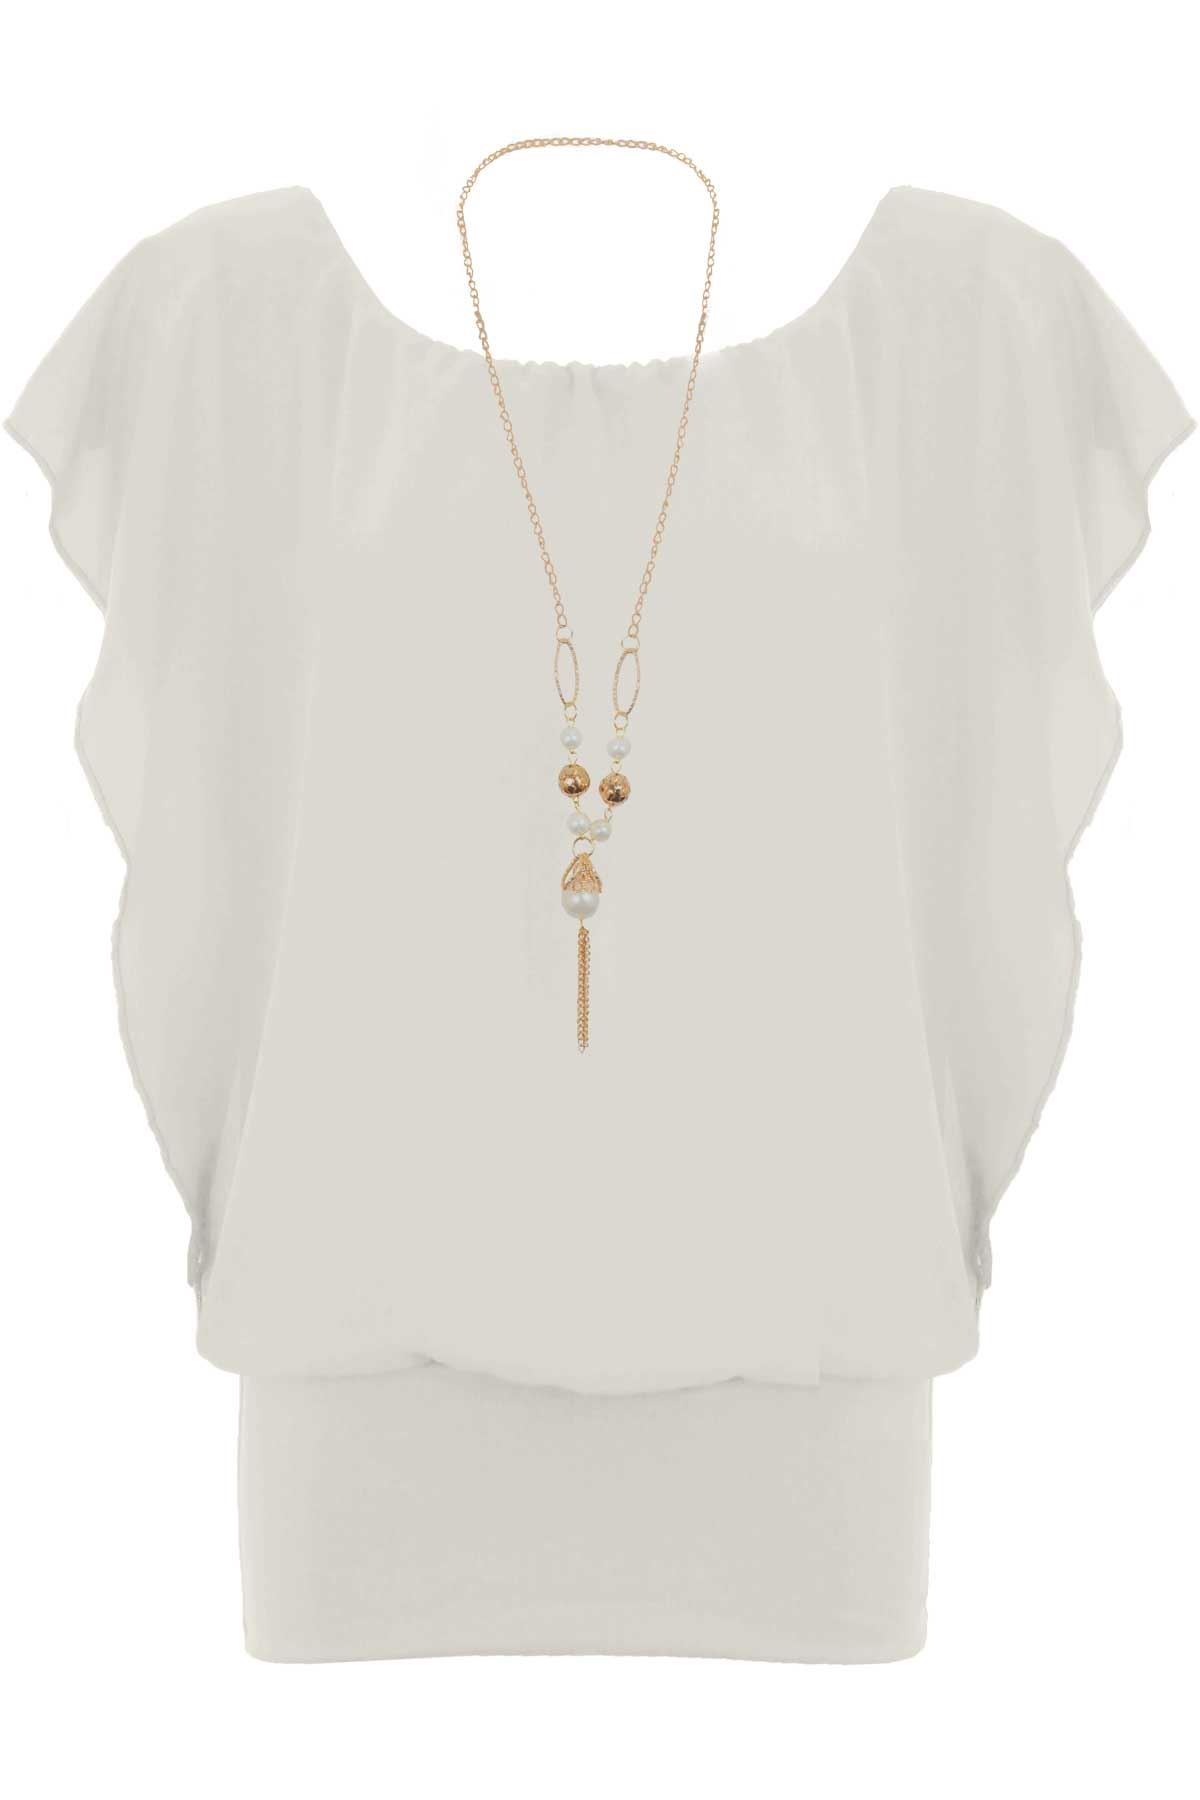 apricot necklace top batwing